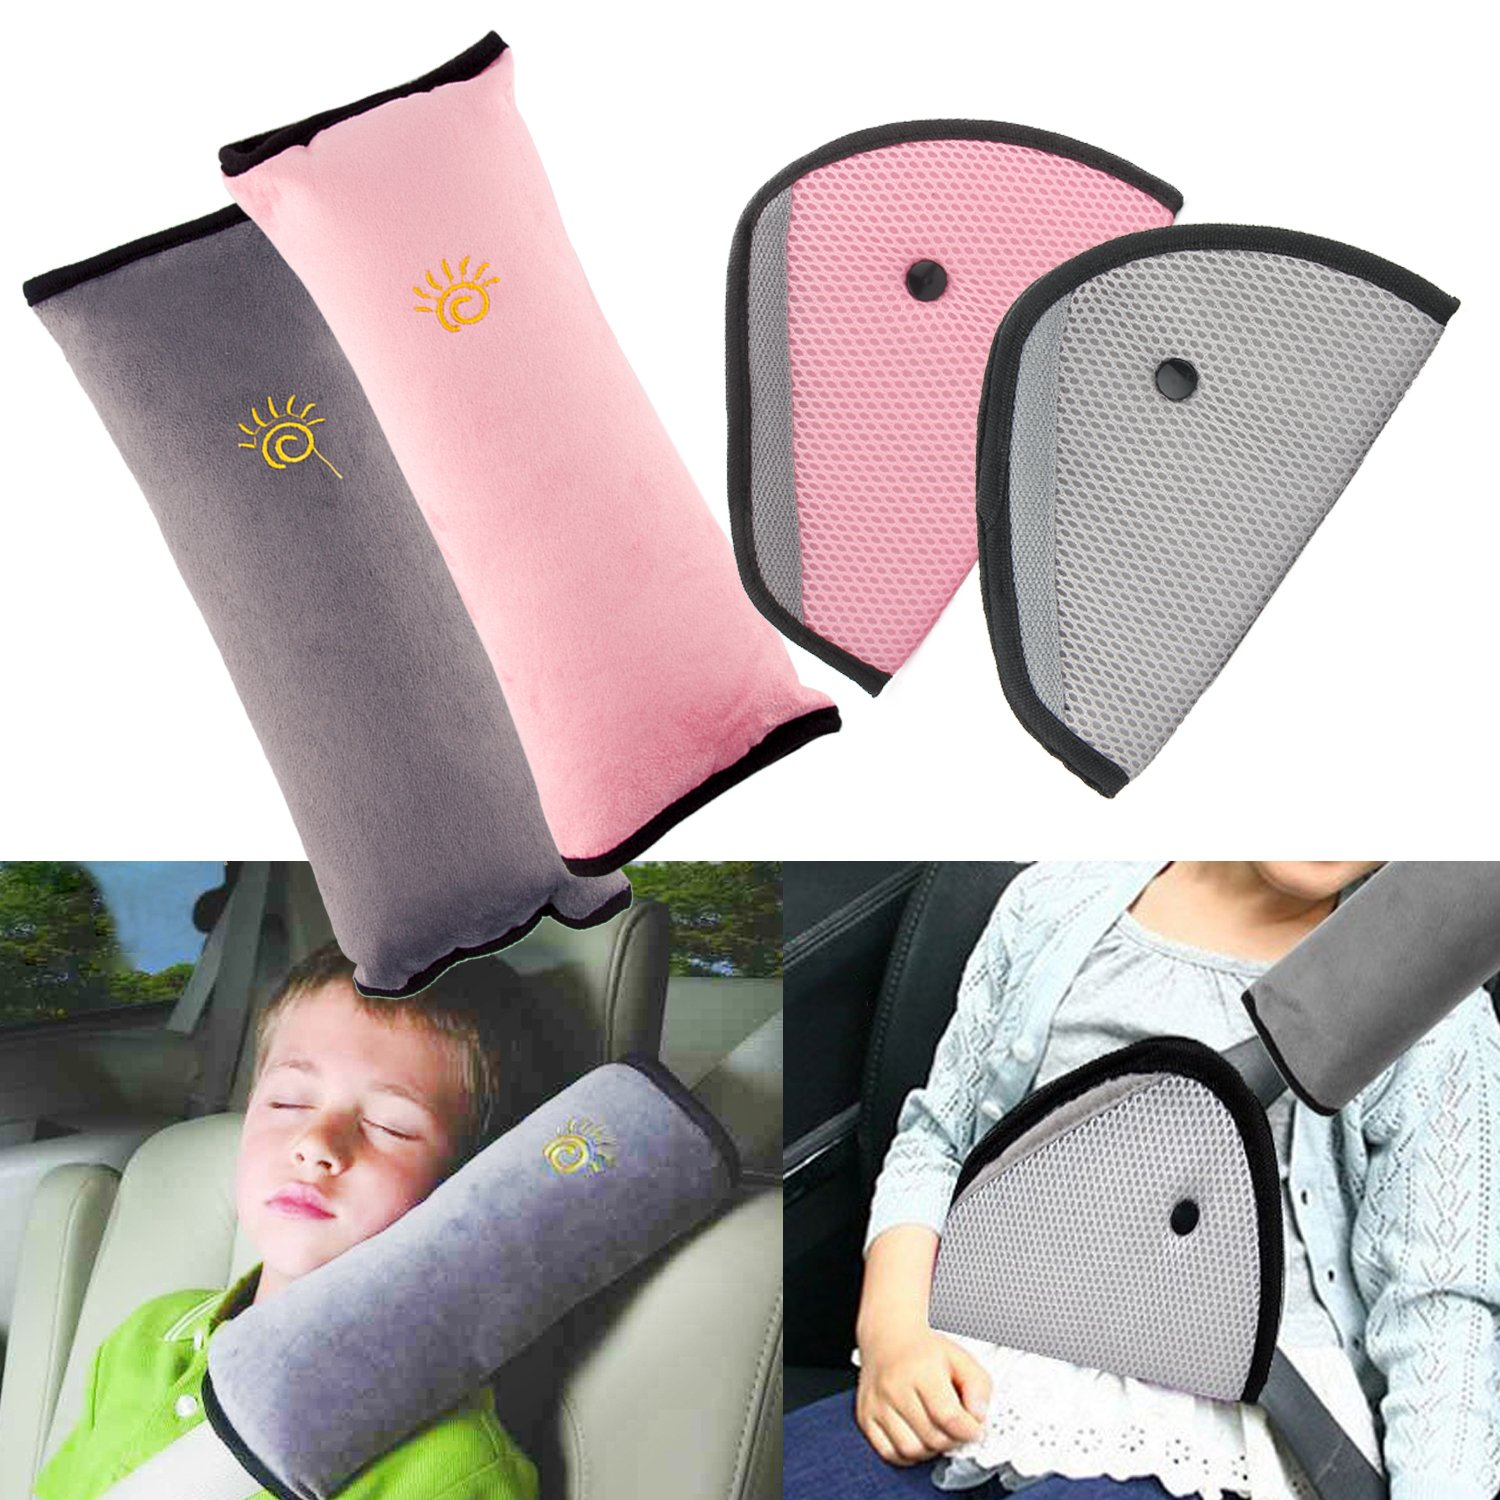 R ? HORSE 4Pack Seatbelt Pillow Car Seat Belt Covers for Kids, Adjust Vehicle Shoulder Pads Safety Belt Protector Cushion Plush Soft Auto Seat Belt Strap Cover Headrest Neck Support for Children Baby by R ? HORSE